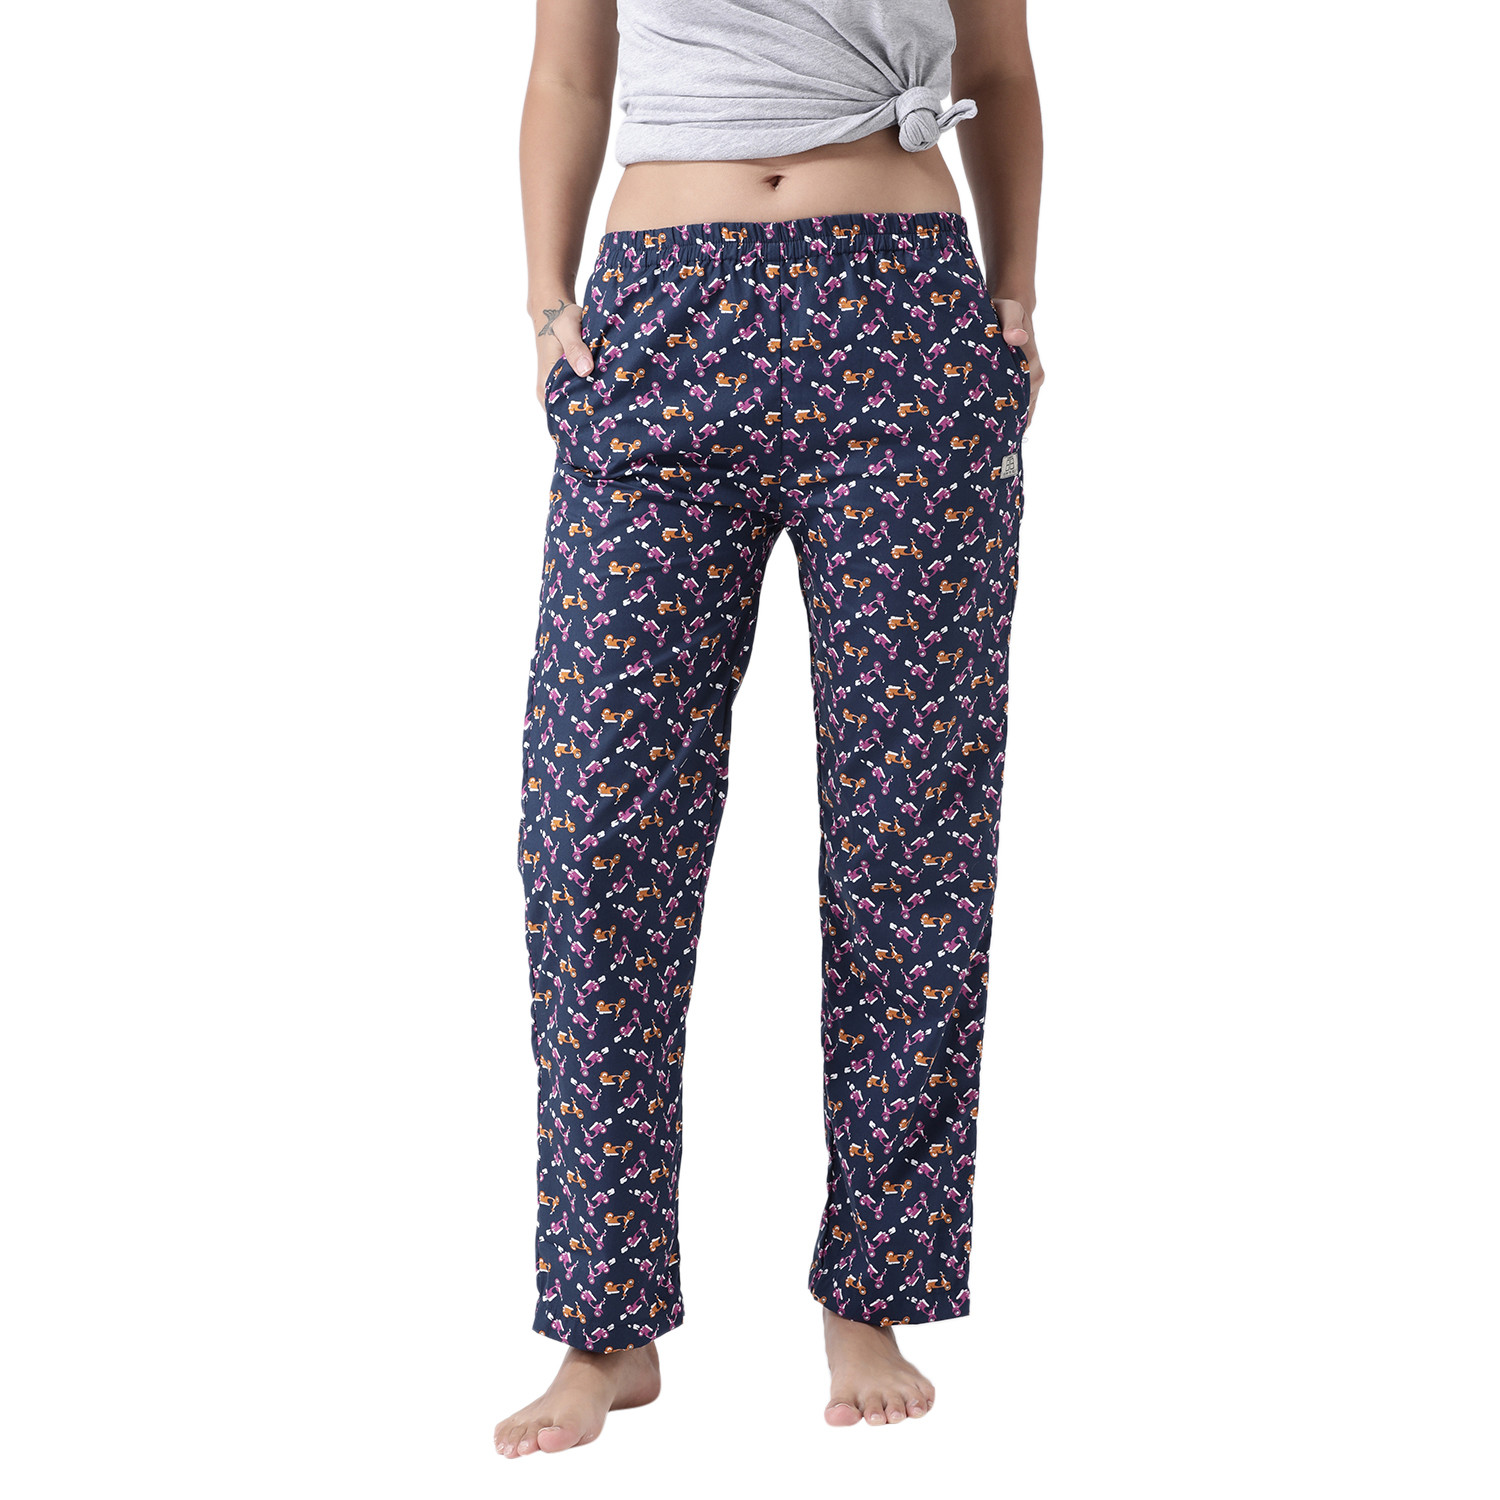 The Vespa Club Women's Cotton Pajamas